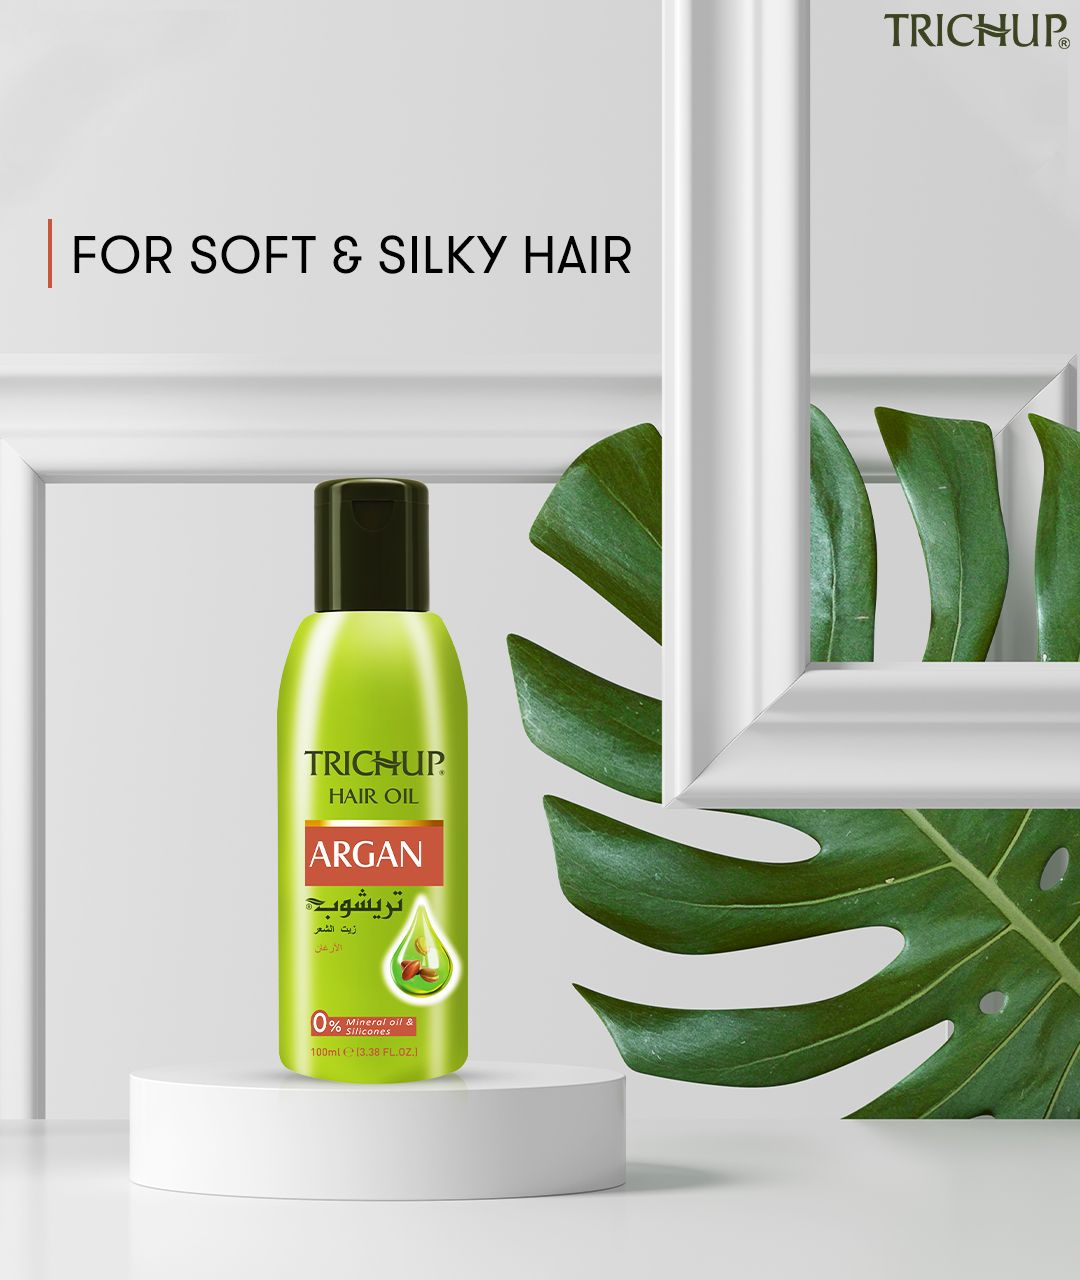 Trichup Argan Hair Oil Blended With The Goodness Of Moroccan Argan That Makes Hair Manageable Thickerand Healthi Herbal Shampoos Ayurvedic Hair Oil Hair Oil